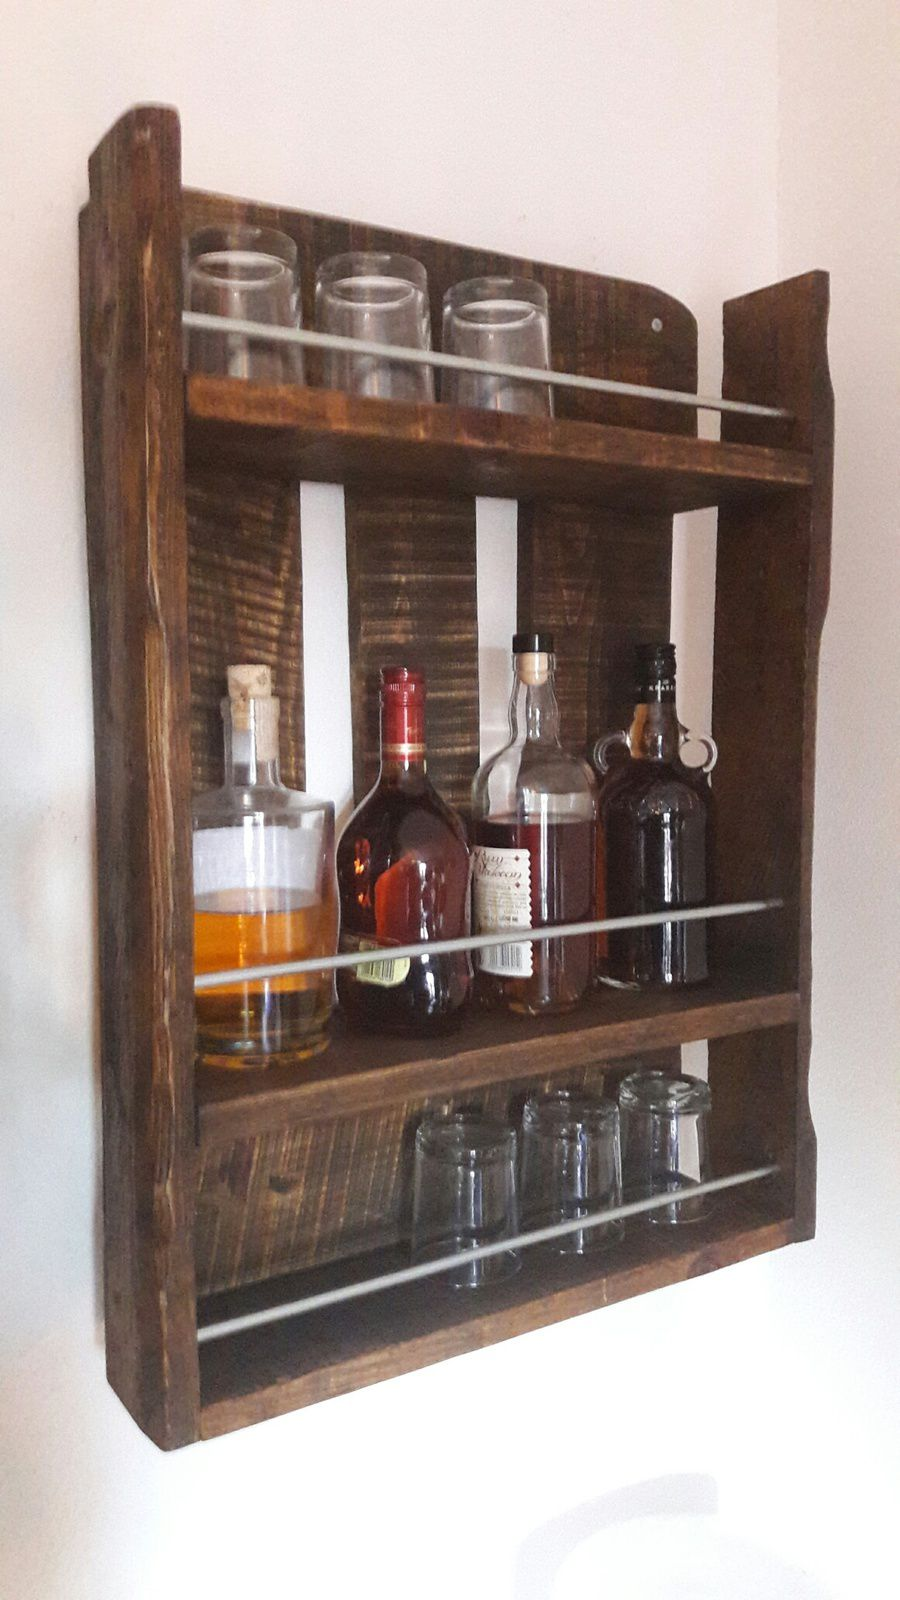 etag re de type bottle rack en bois de palettes et acier version rhum whisky les ateliers. Black Bedroom Furniture Sets. Home Design Ideas